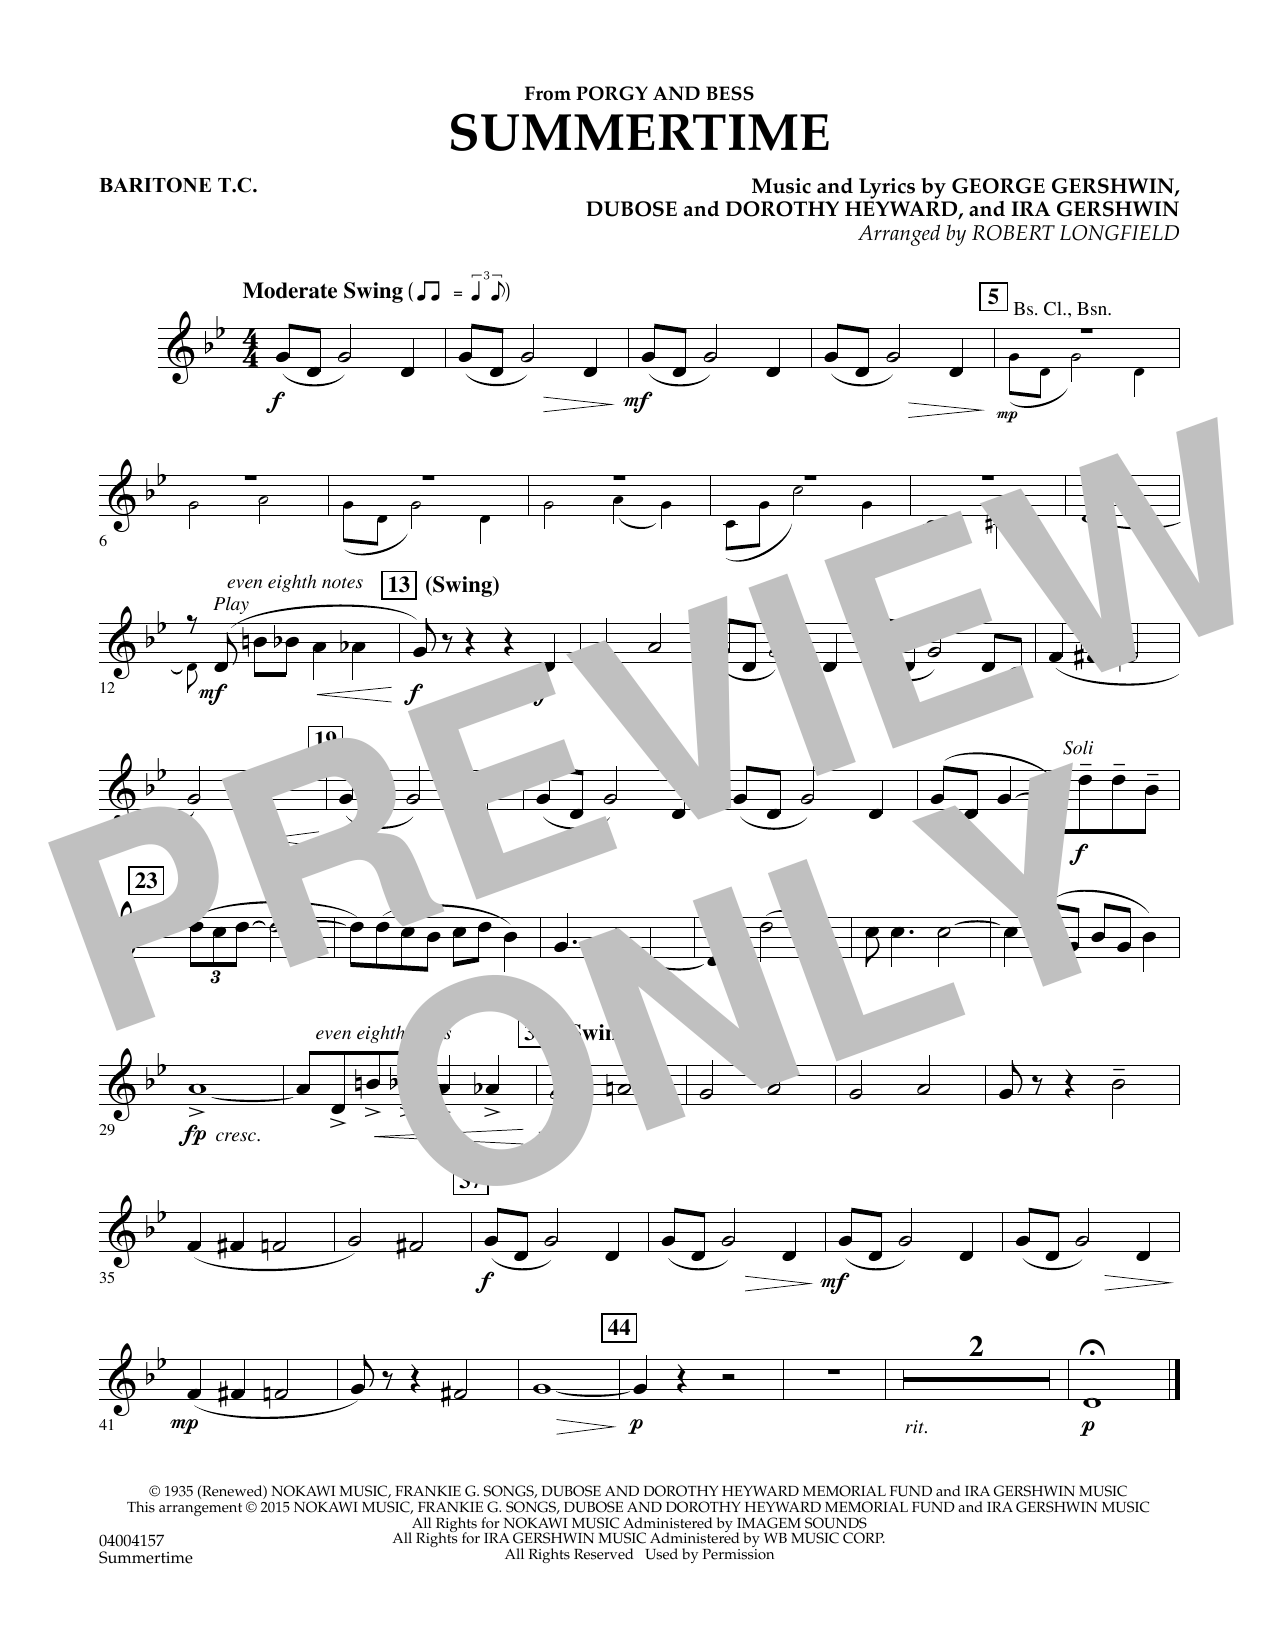 Summertime (from Porgy and Bess) - Baritone T.C. Sheet Music